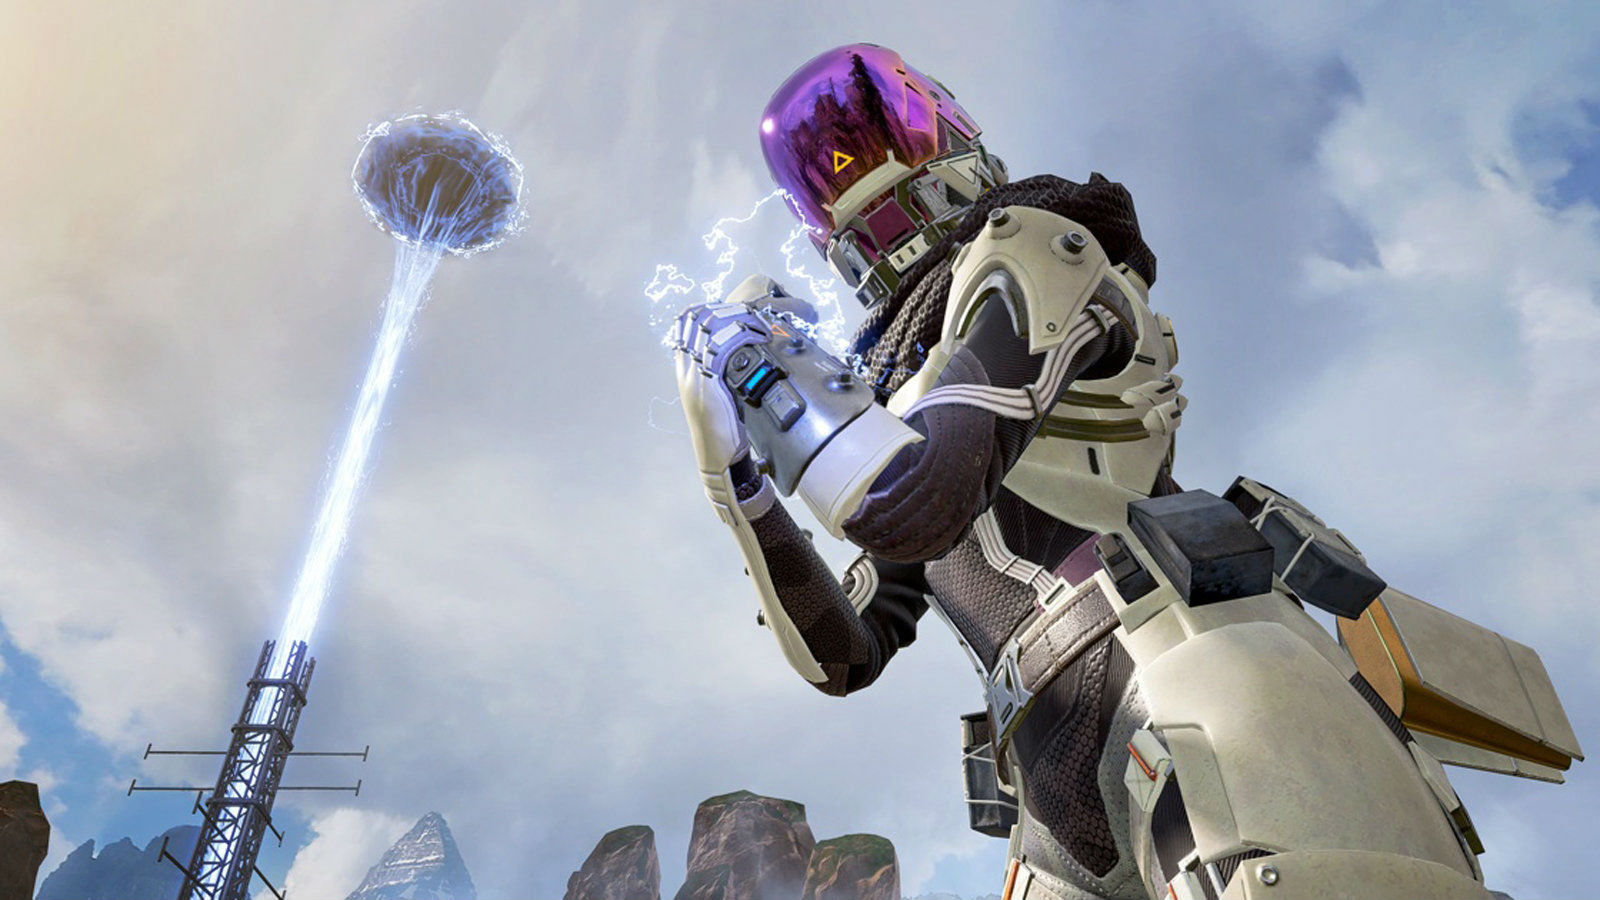 Apex Legends approaches 70 million players, becomes EA's bread and butter shooter screenshot